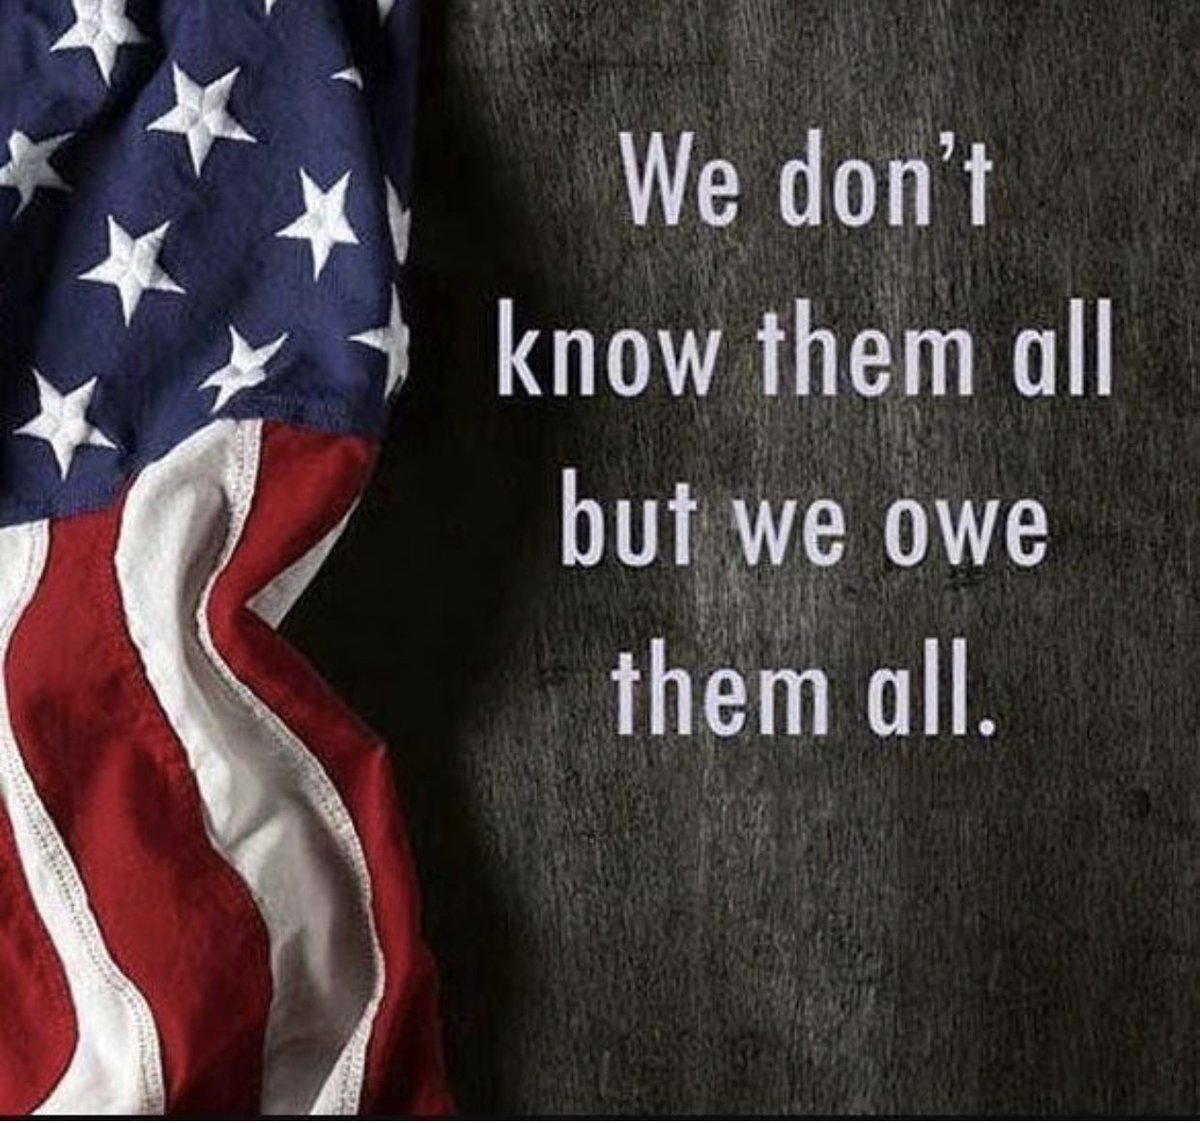 We thank you for your amazing sacrifice for us to have our freedoms✌🌞💛